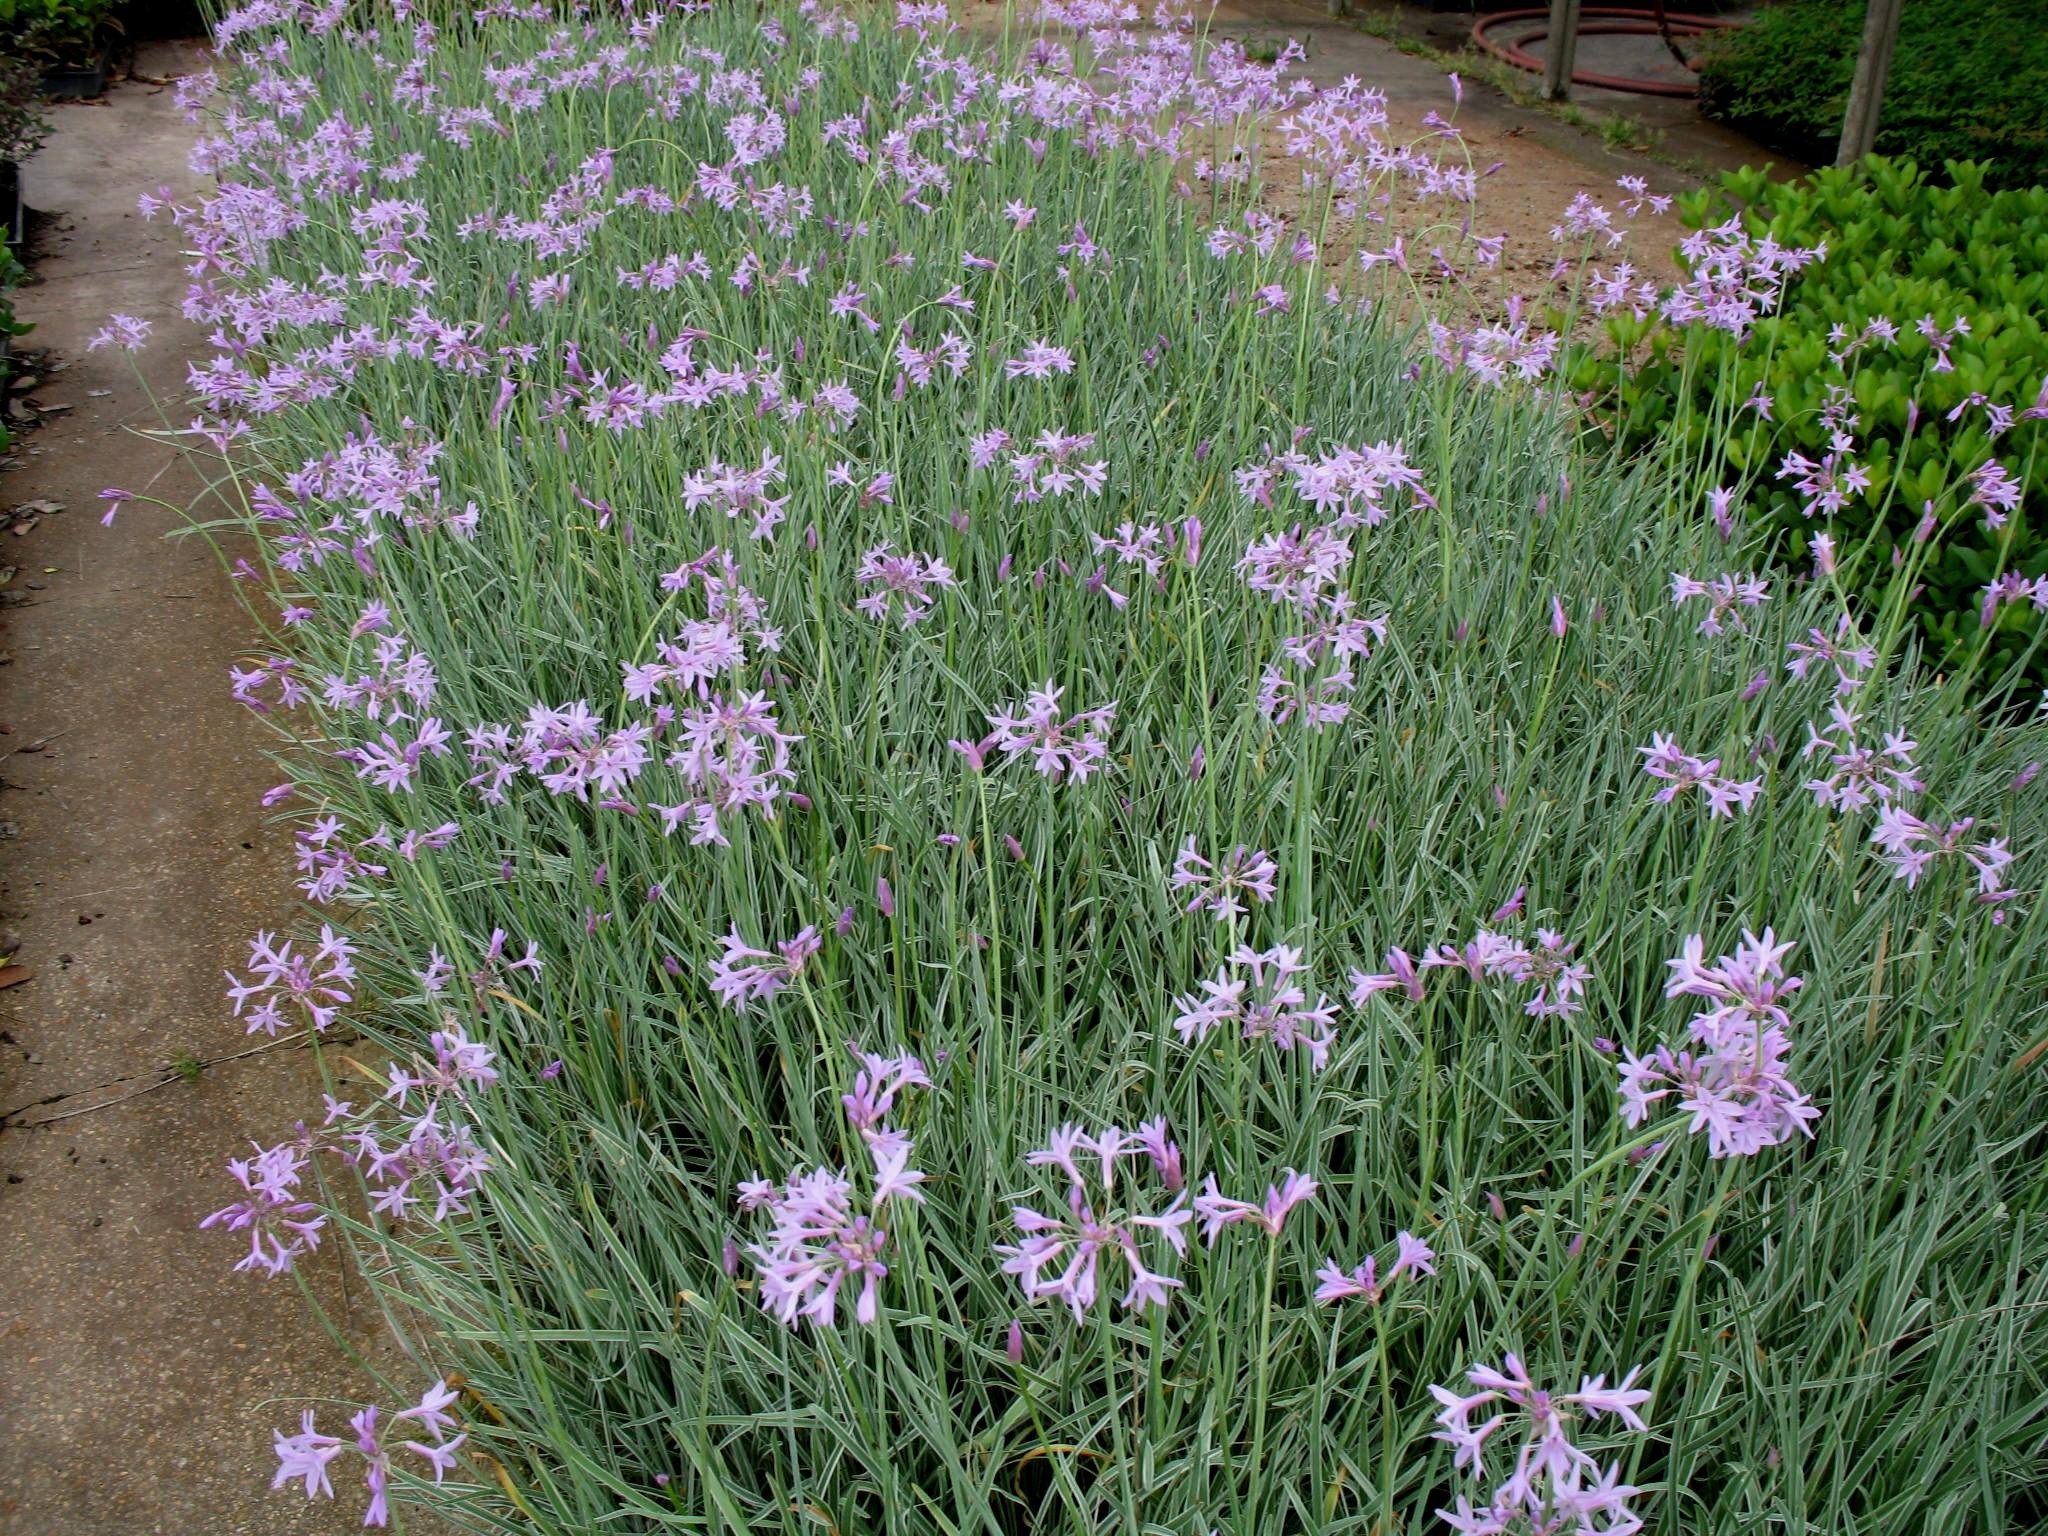 Tulbaghia violacea 'Tricolor'  / Variegated Society Garlic